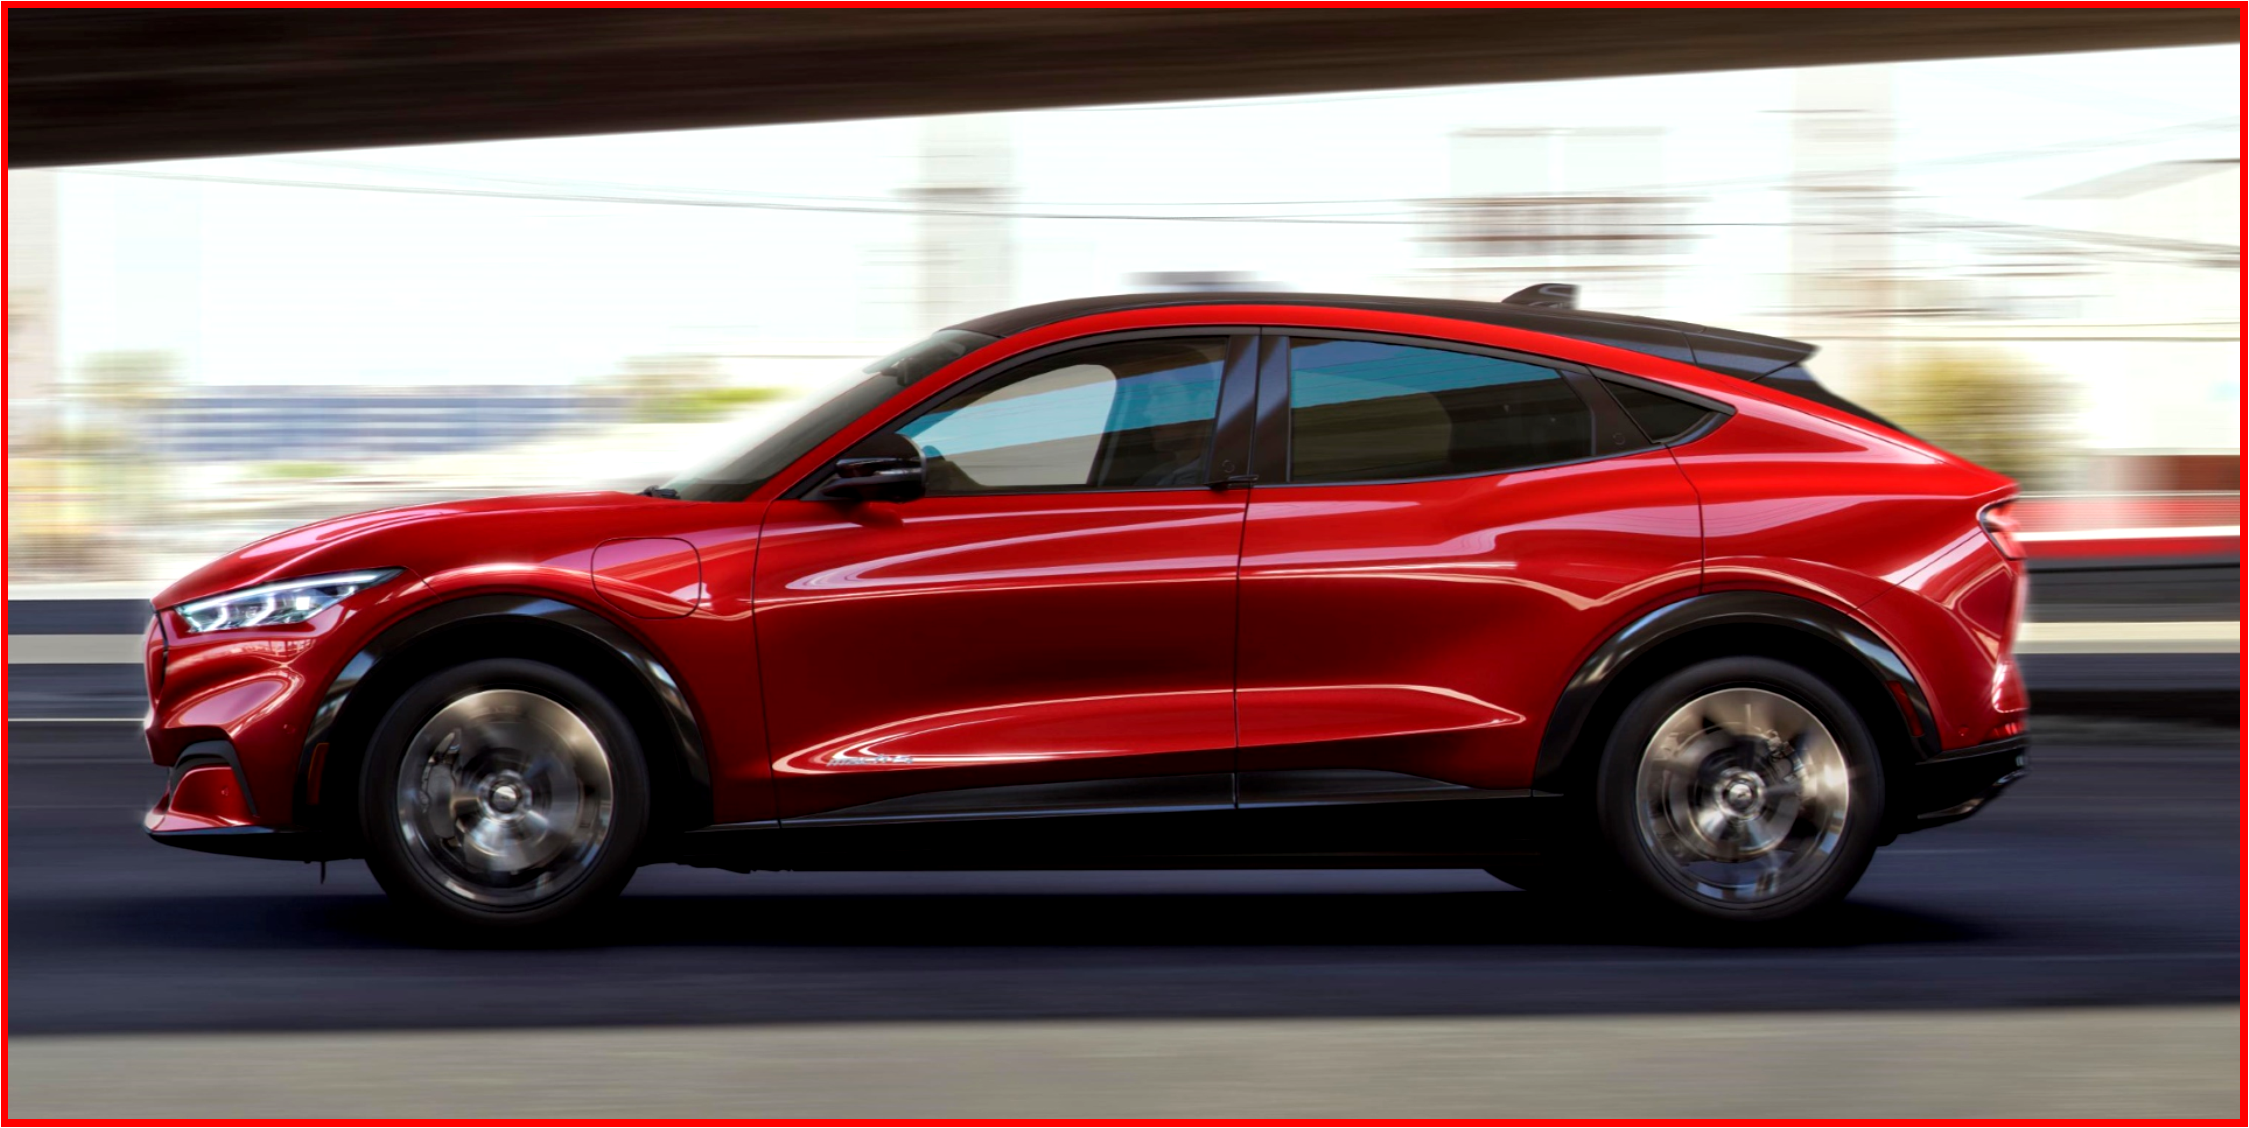 AutoInformed.com on All-Electric Mustang Mach-E - Debut November 2020